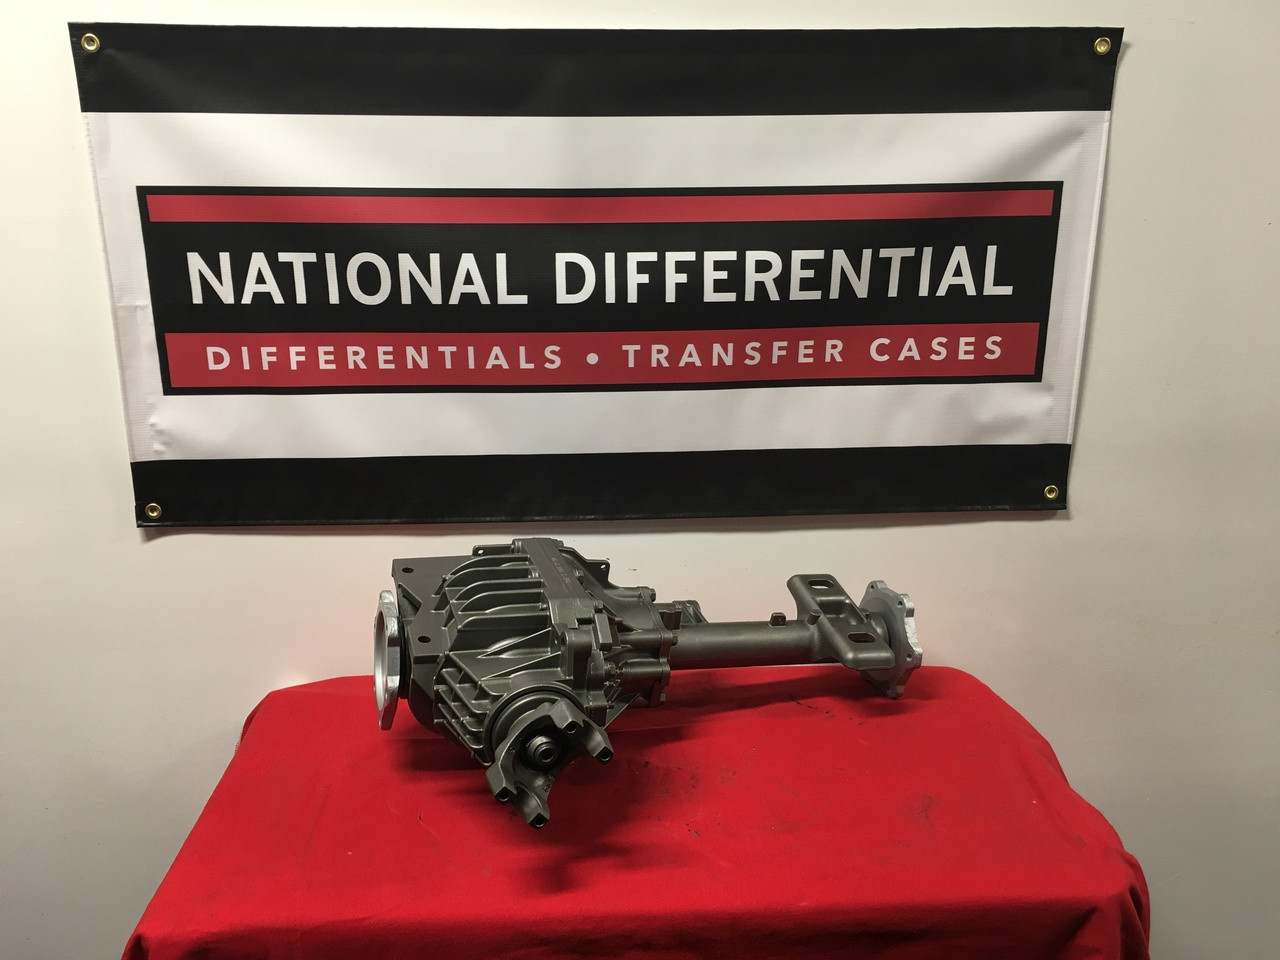 8.25-inch Front Differential for 2007, 2008, 2009, 2010, 2011, 2012, 2013, 2014 Cadillac Escalade available with a 3.08, 3.42, or 3.73 gear ratios